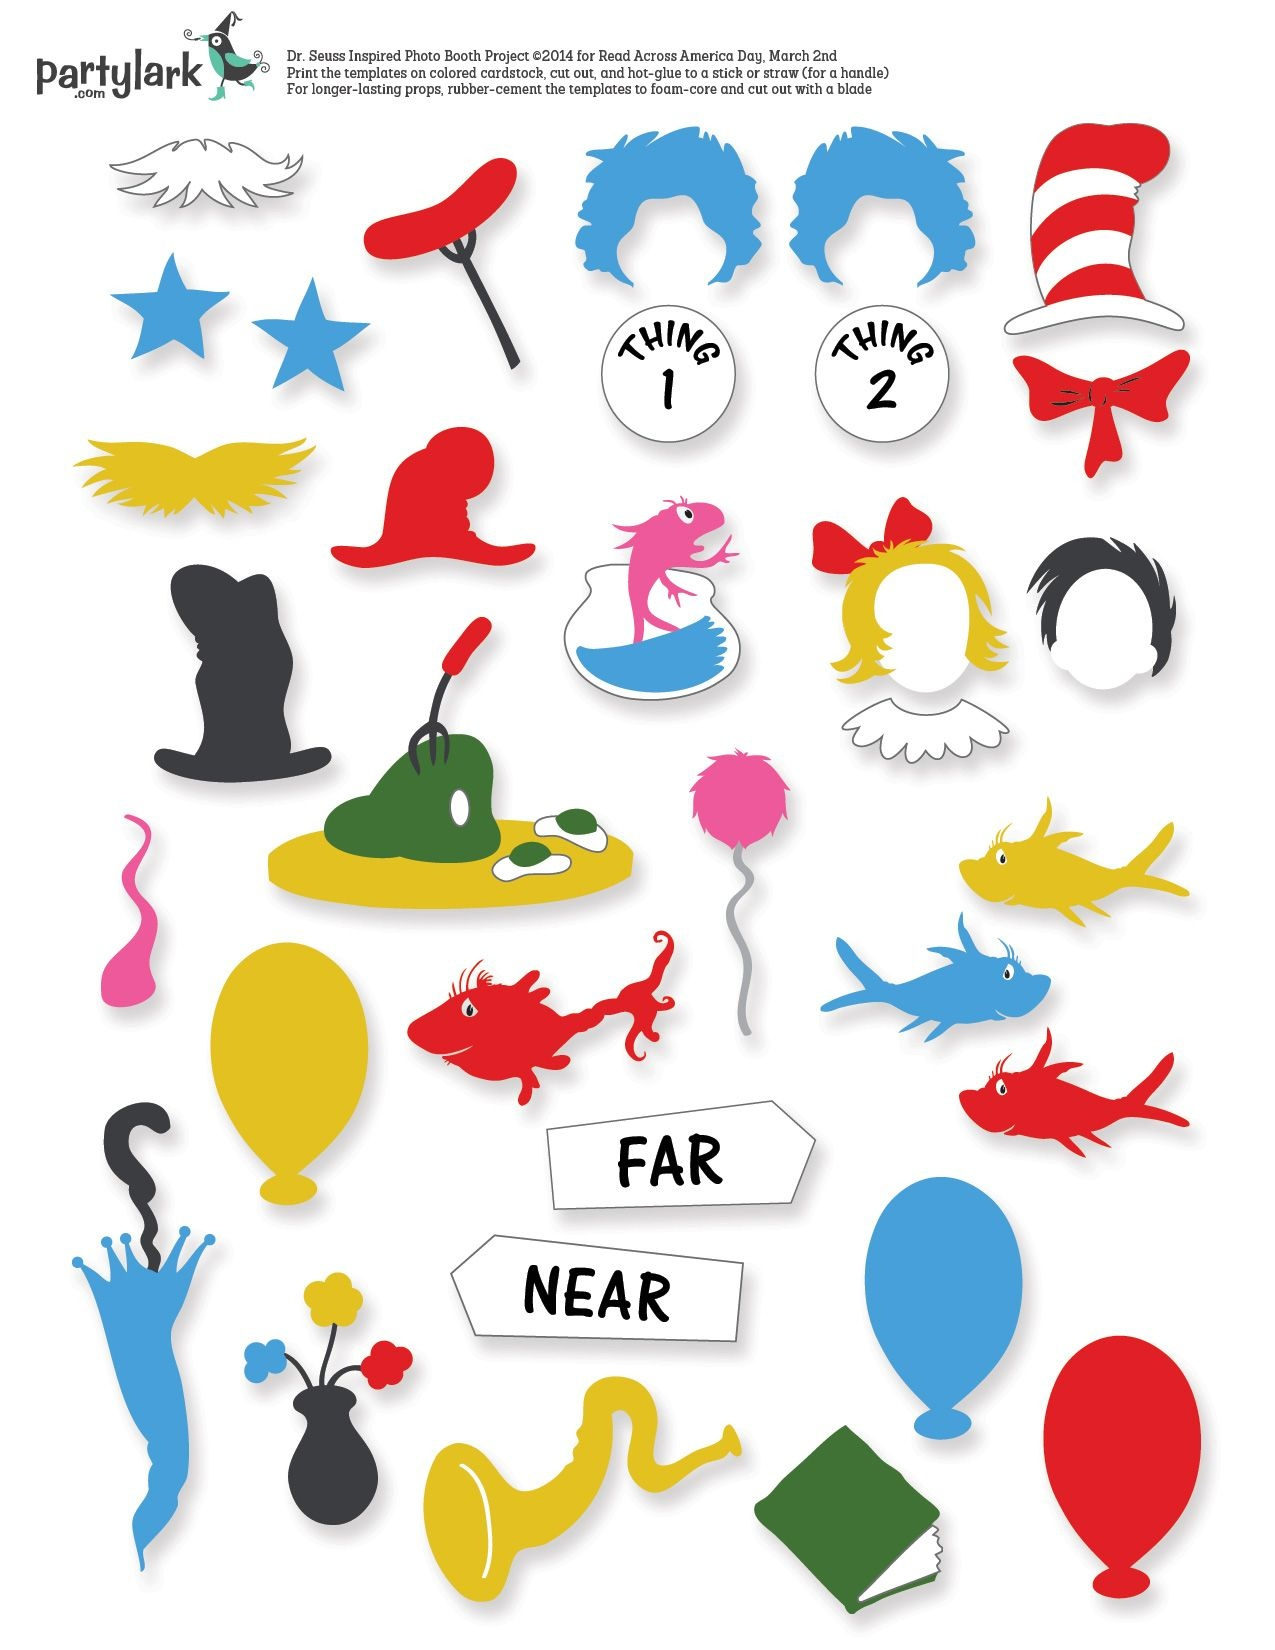 Pinparty Lark On Partytime March: Kiddos & Printables   Dr Seuss - Free Printable Dr Seuss Photo Props